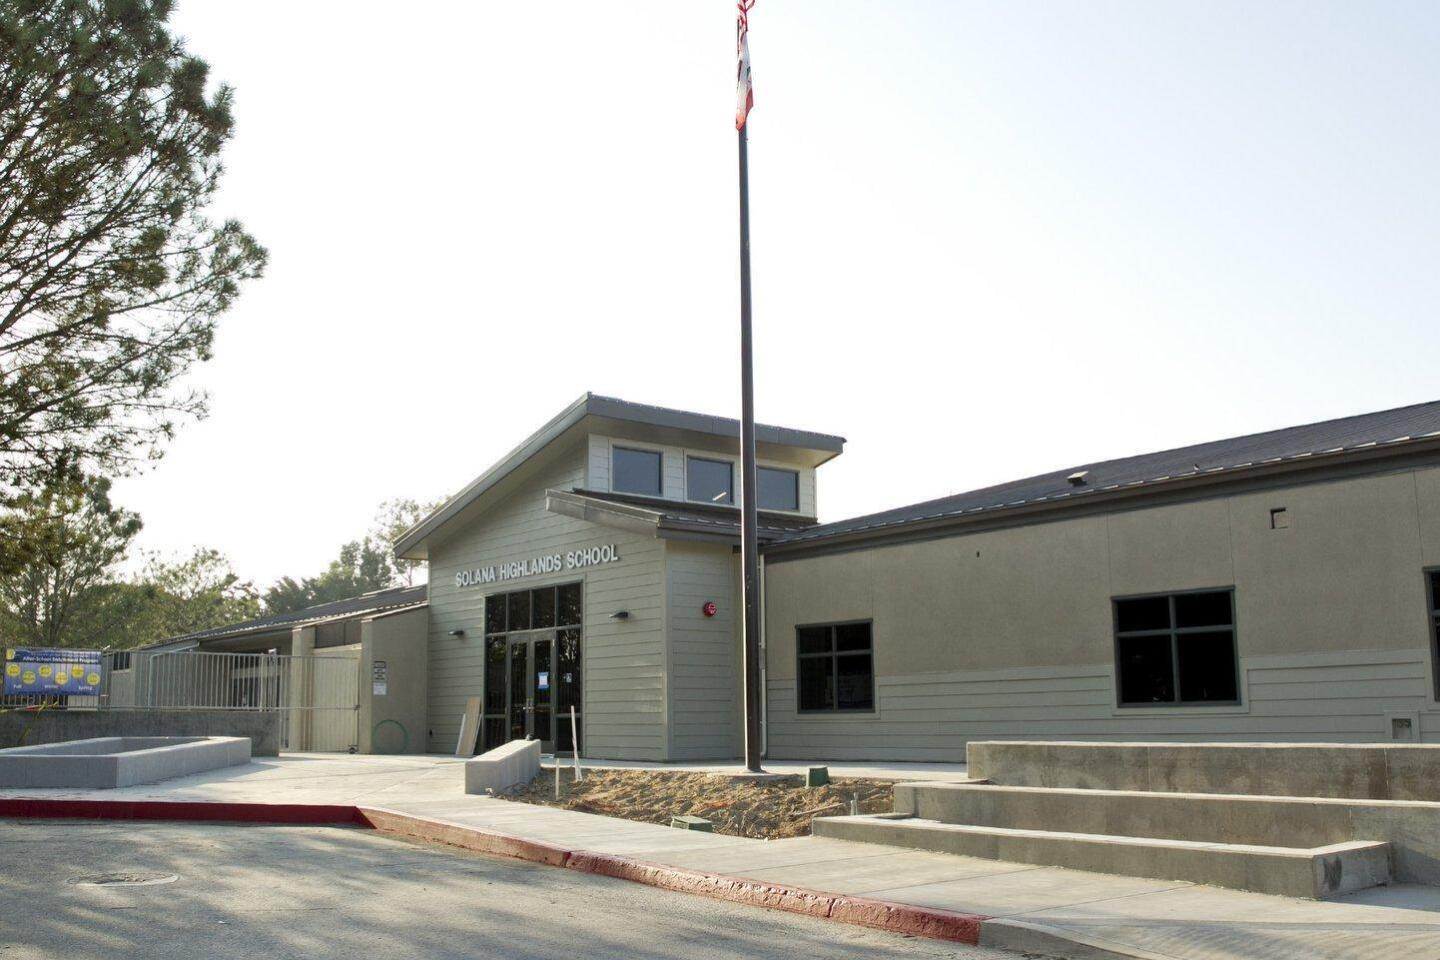 A new look for the entrance to Solana Highlands School